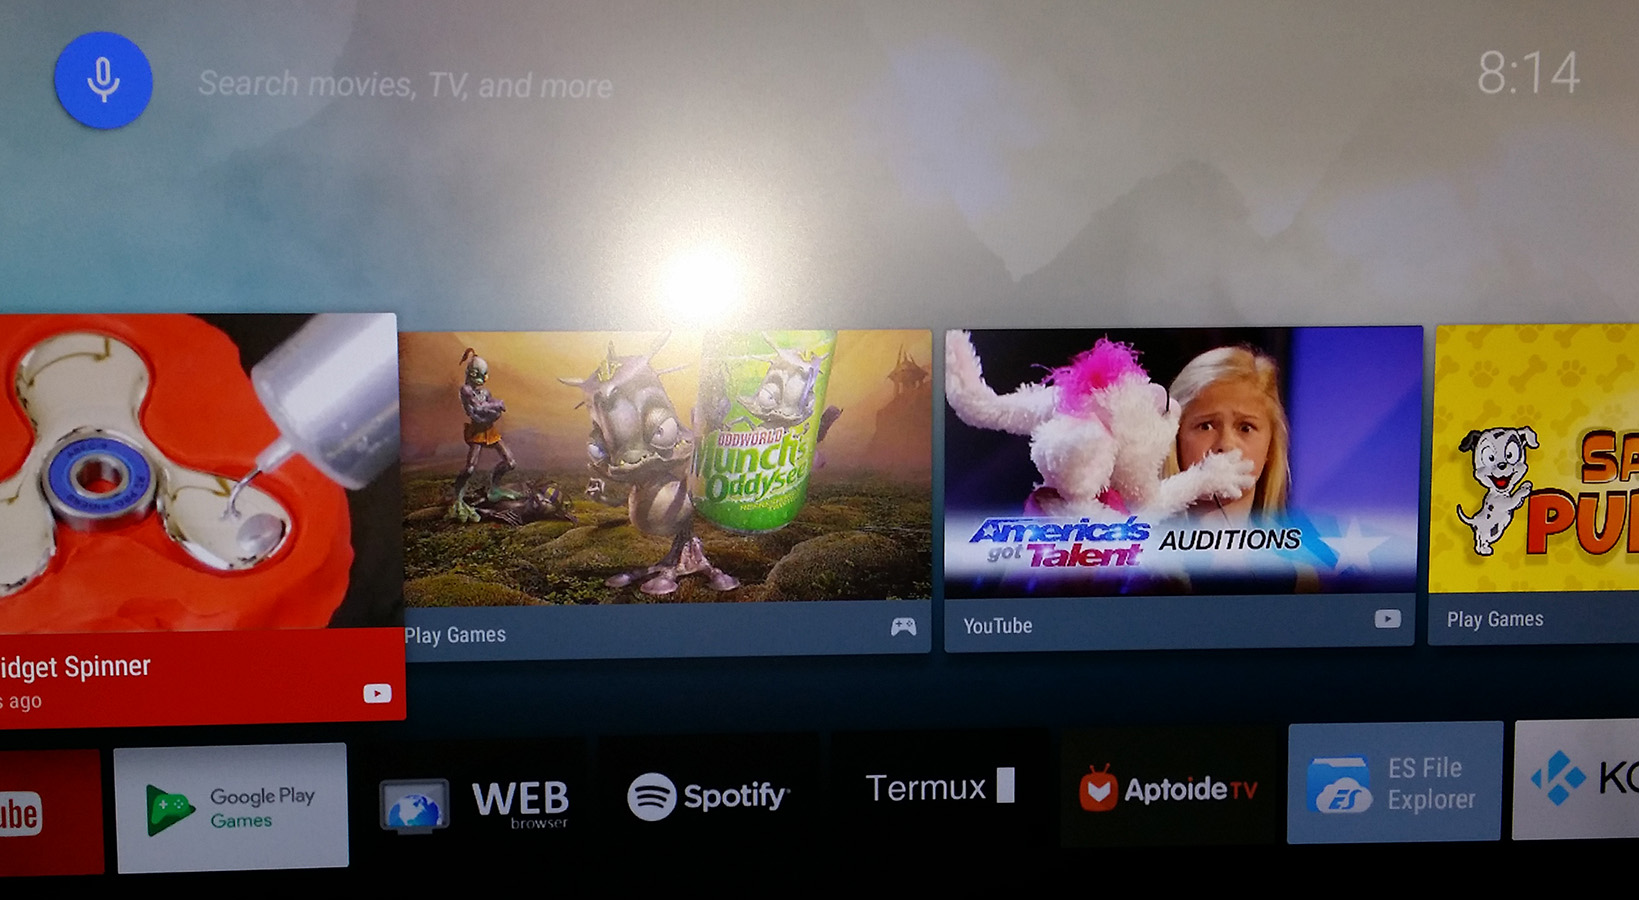 RaspAnd Nougat 7 1 2 for Raspberry Pi 3 and Pi 2 Build 170605 with GAPPS,  Kodi 17 3, Aptoide TV, SnapTube and Clash of Clans